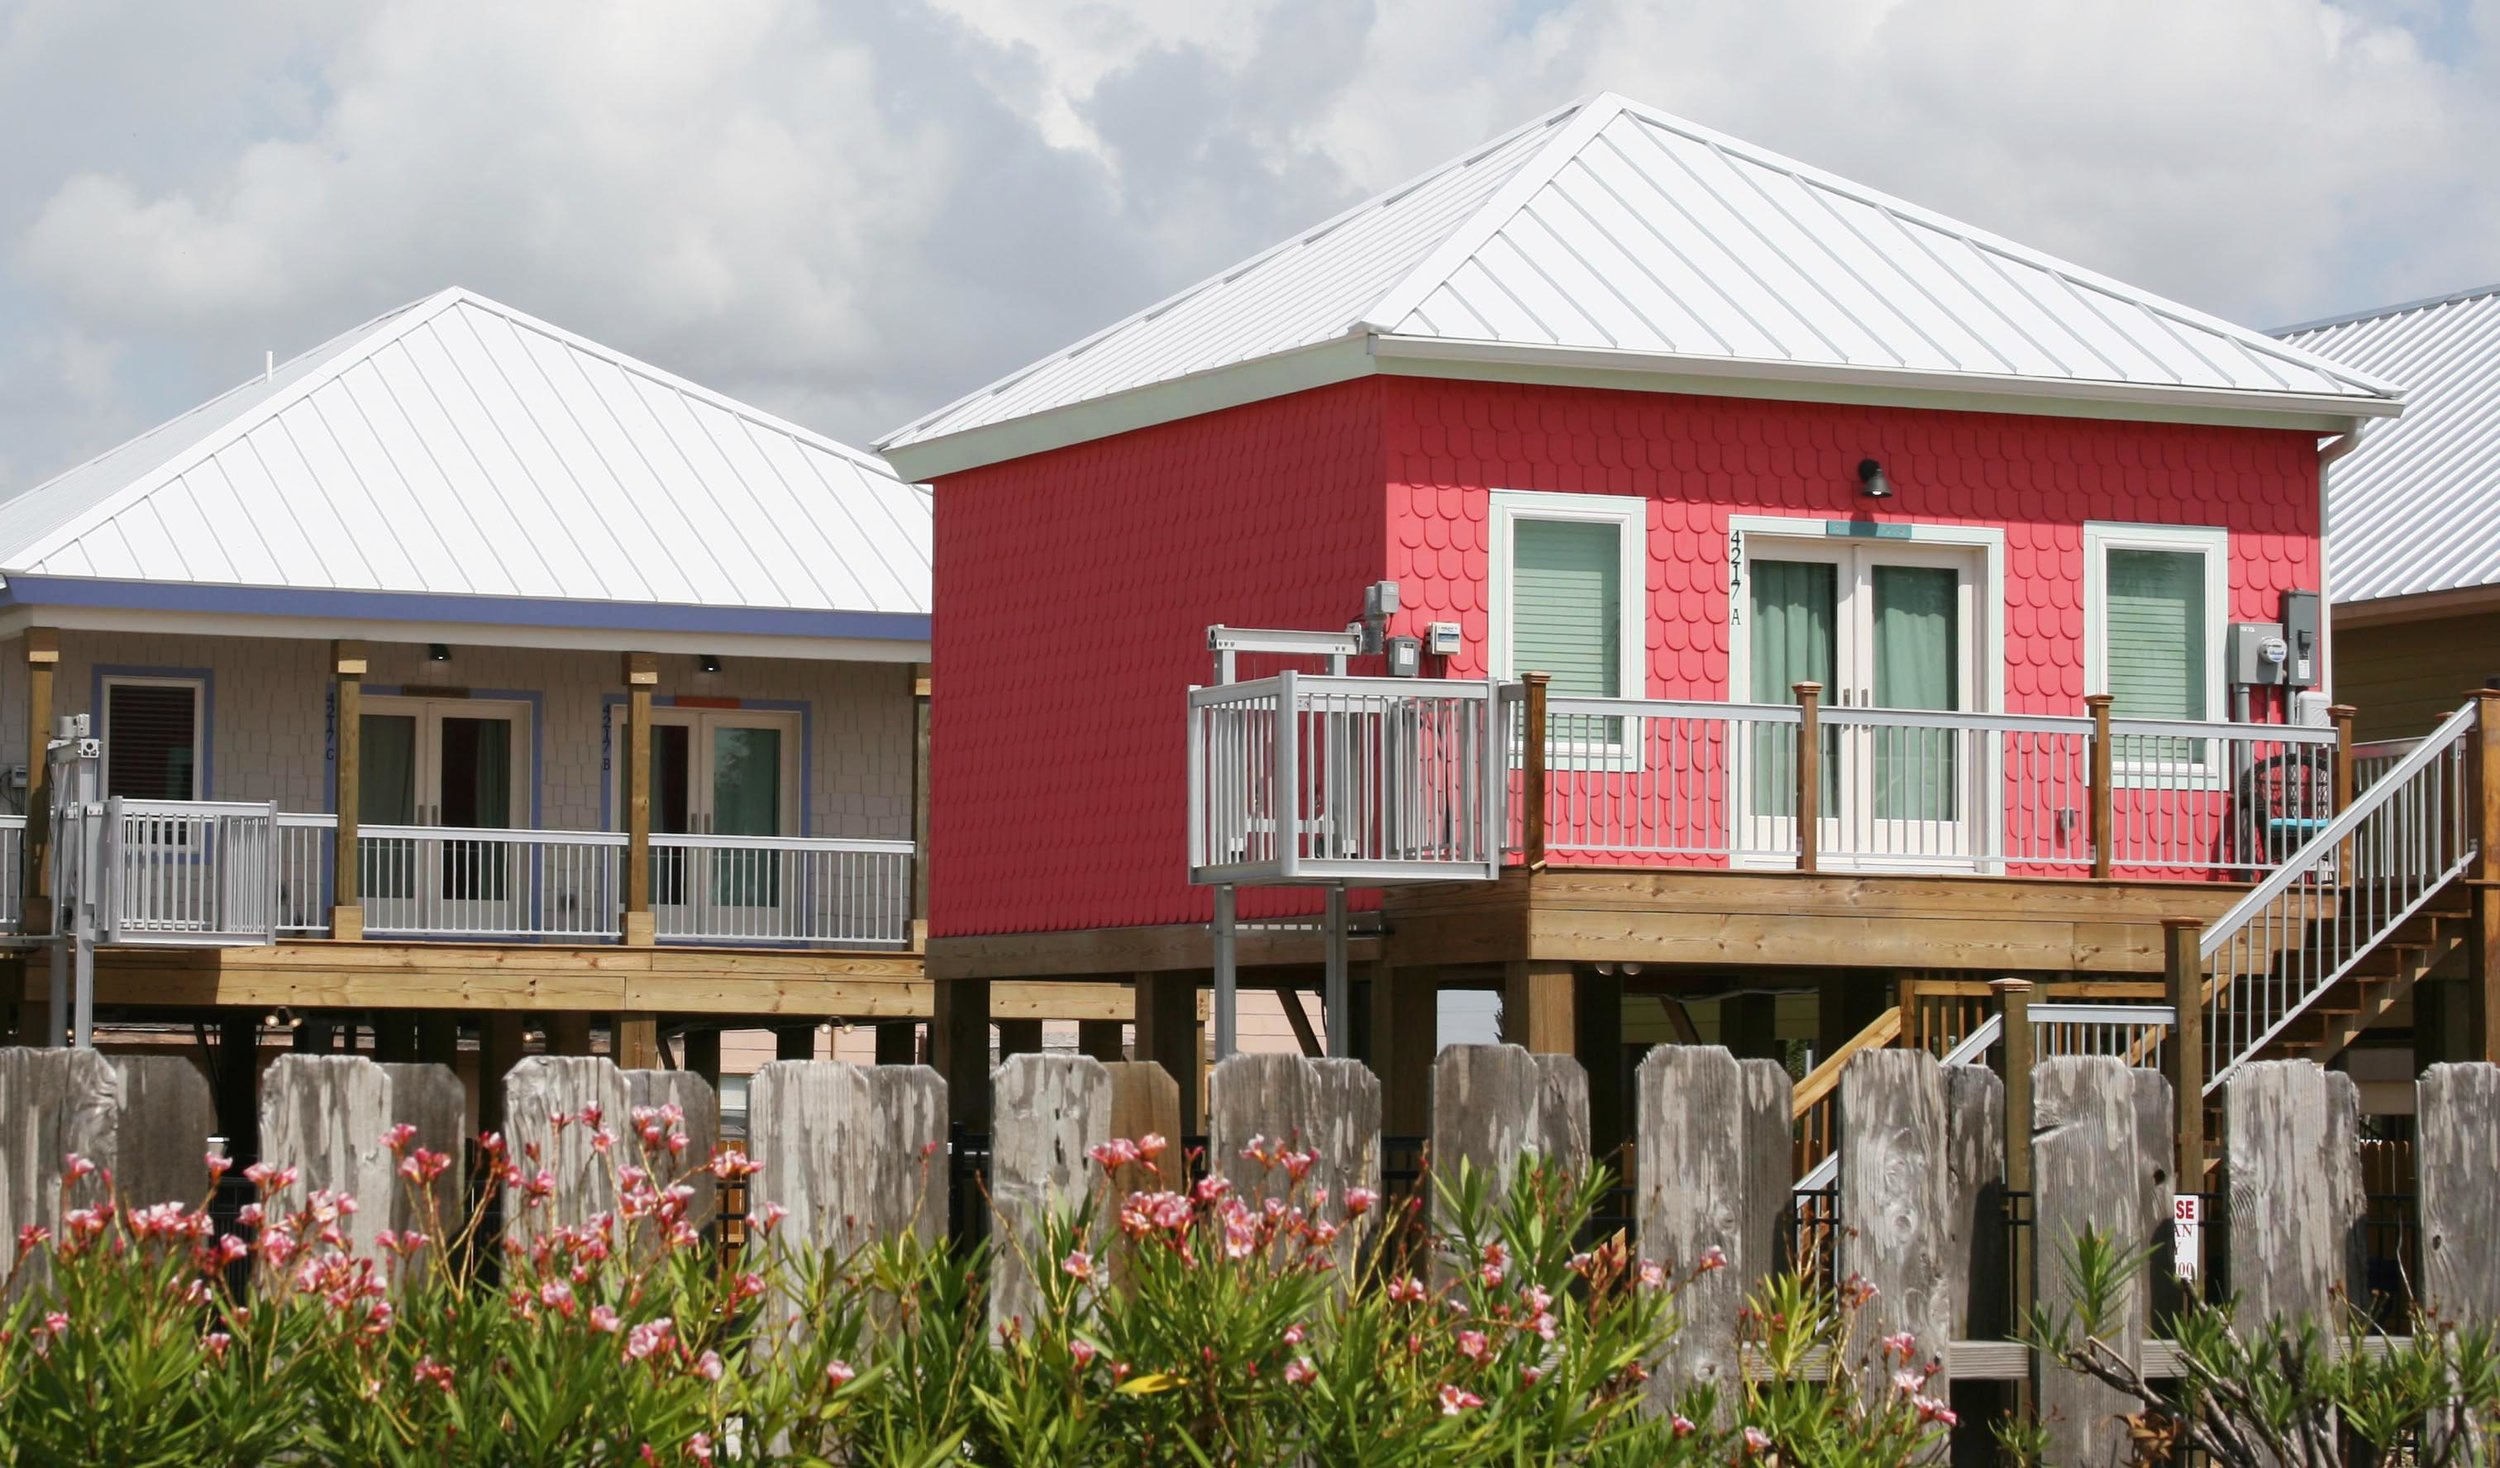 Cottages By the Bay all have views of North Beach and Corpus Christi Bay, just one block away.